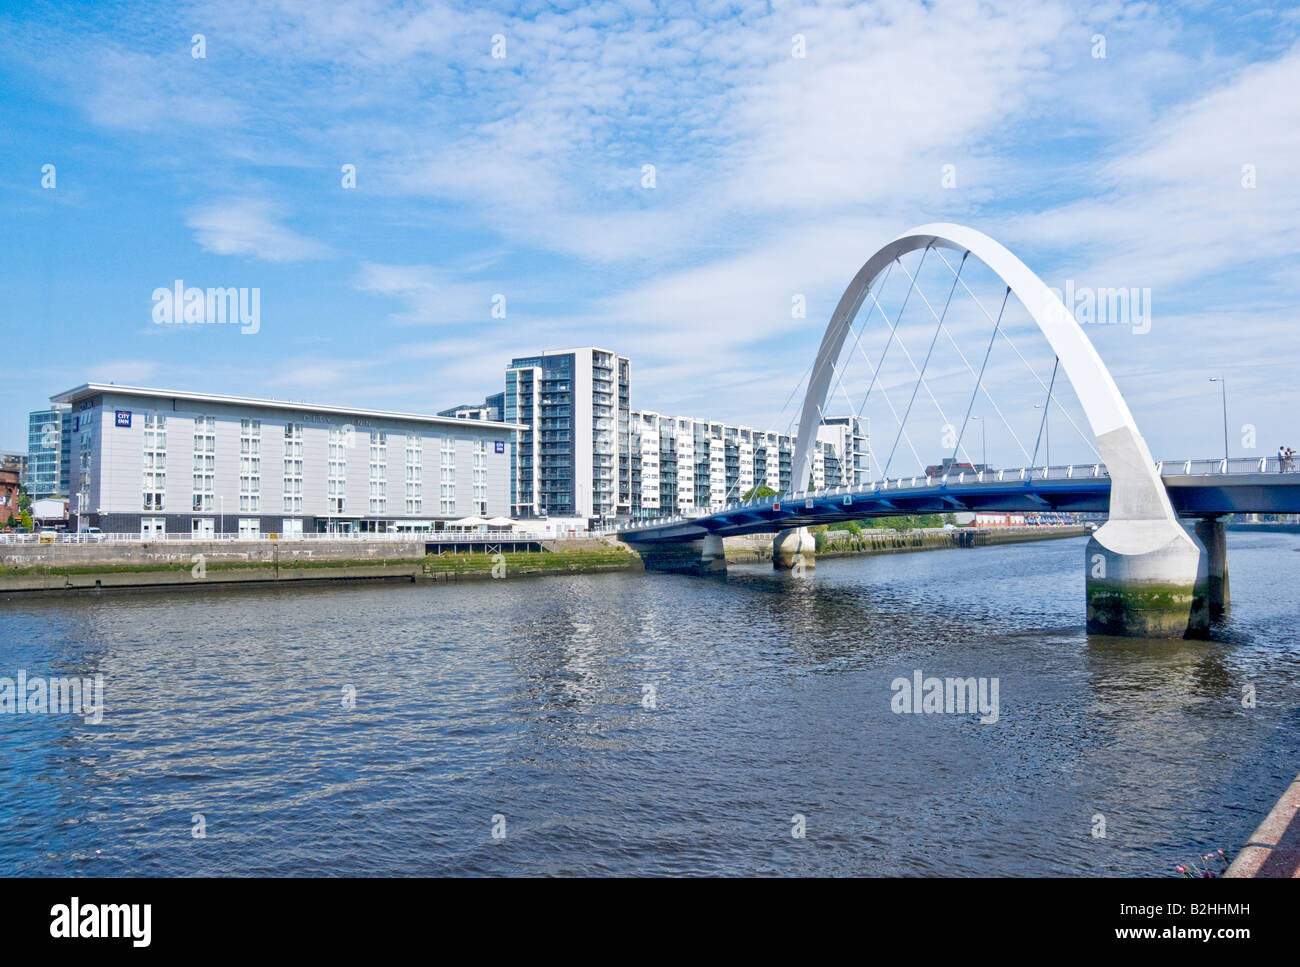 New Clyde Arc Road Bridge spanning the River Clyde between Finnieston Street and Govan Road in Glasgow - Stock Image